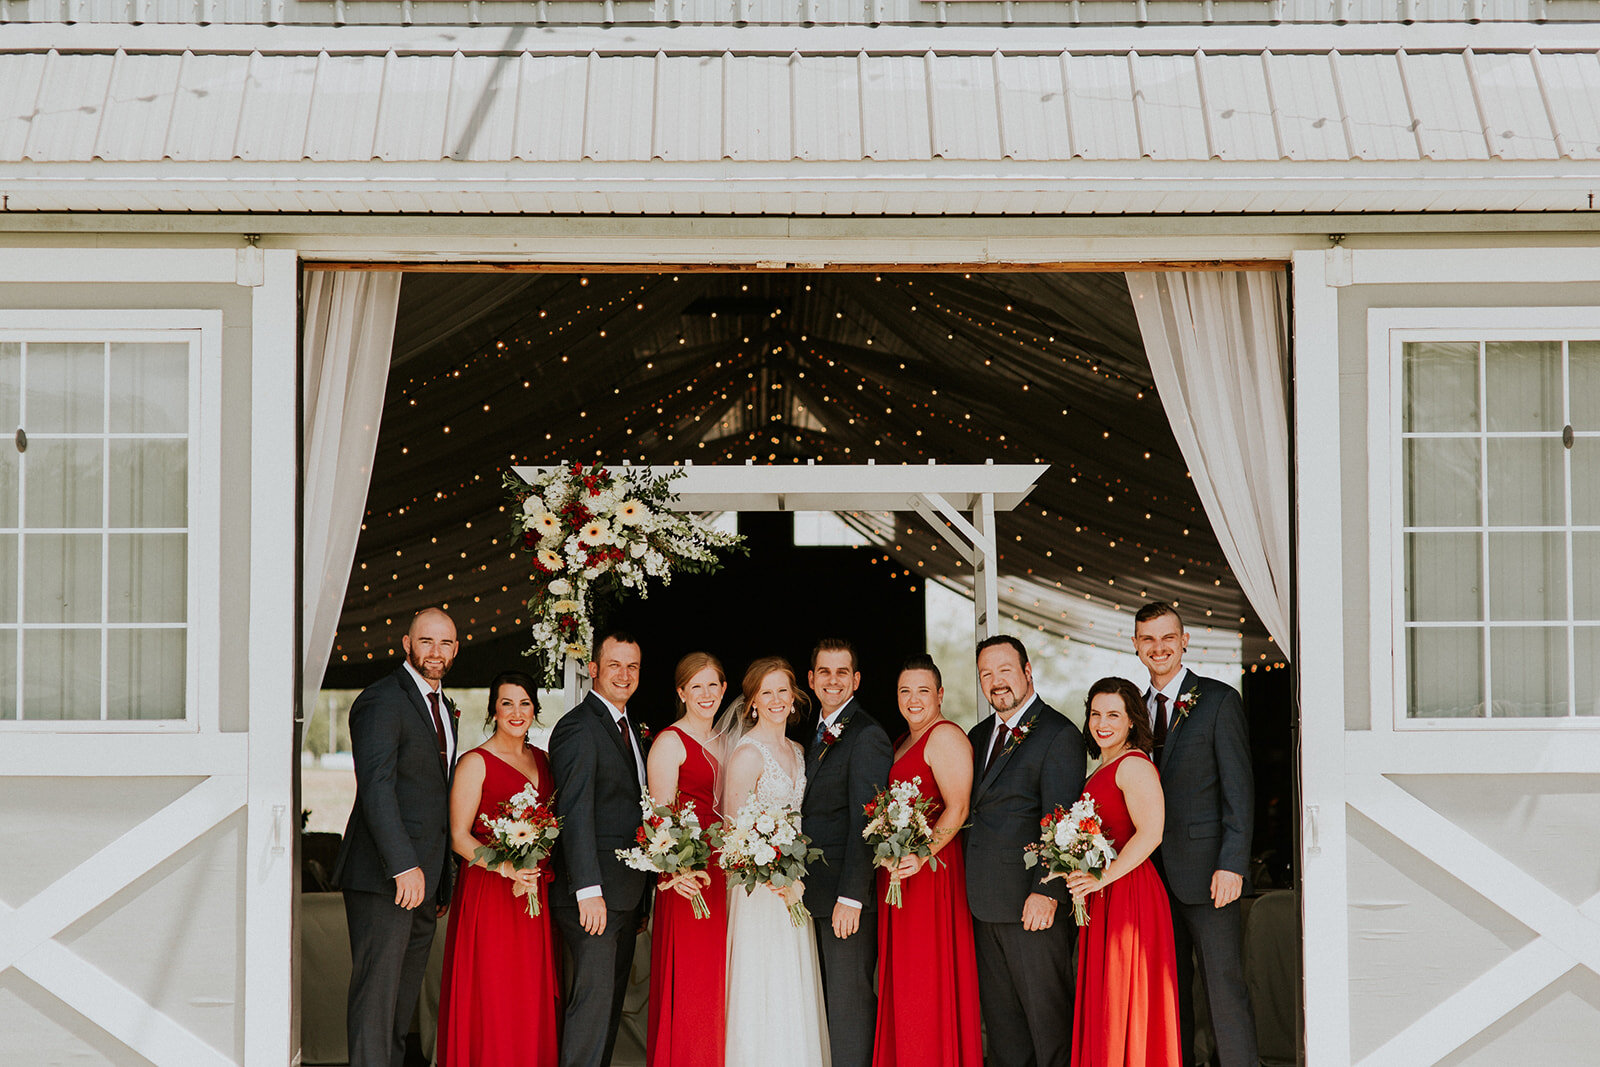 Heather + Ryan - From rustic elements to lush greenery to vibrant red details this wedding at The Stables tied together perfectly.